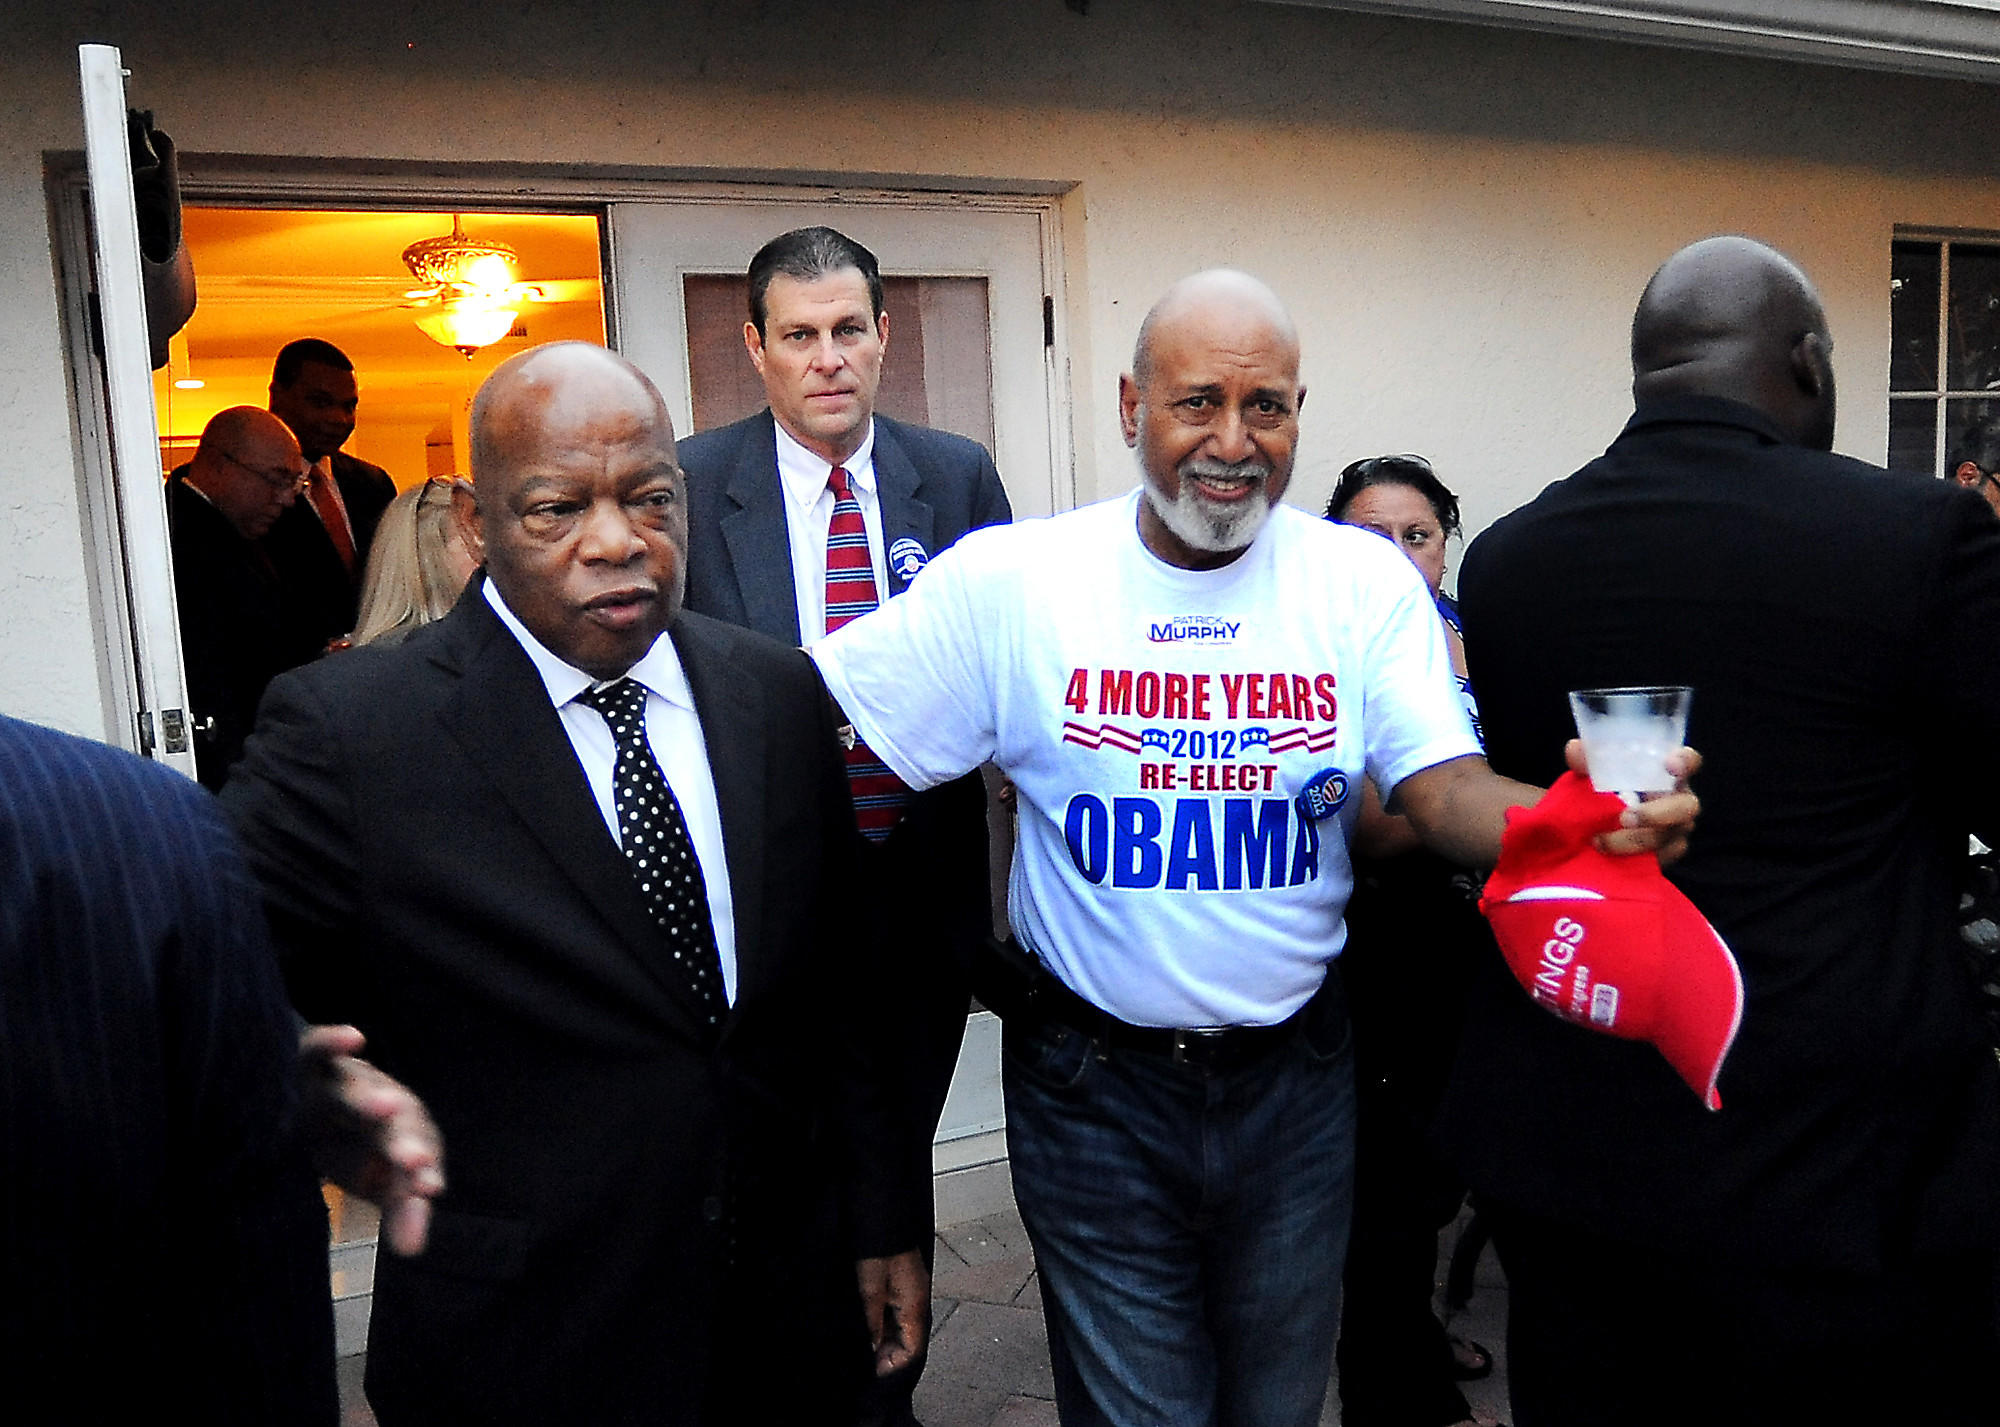 Congressman John Lewis, D-Ga., at left, appears at a Democratic Party event in Plantation accompanied by Broward Democratic Chairman Mitch Ceasar, center, and U.S. Rep. Alcee Hastings, at right.